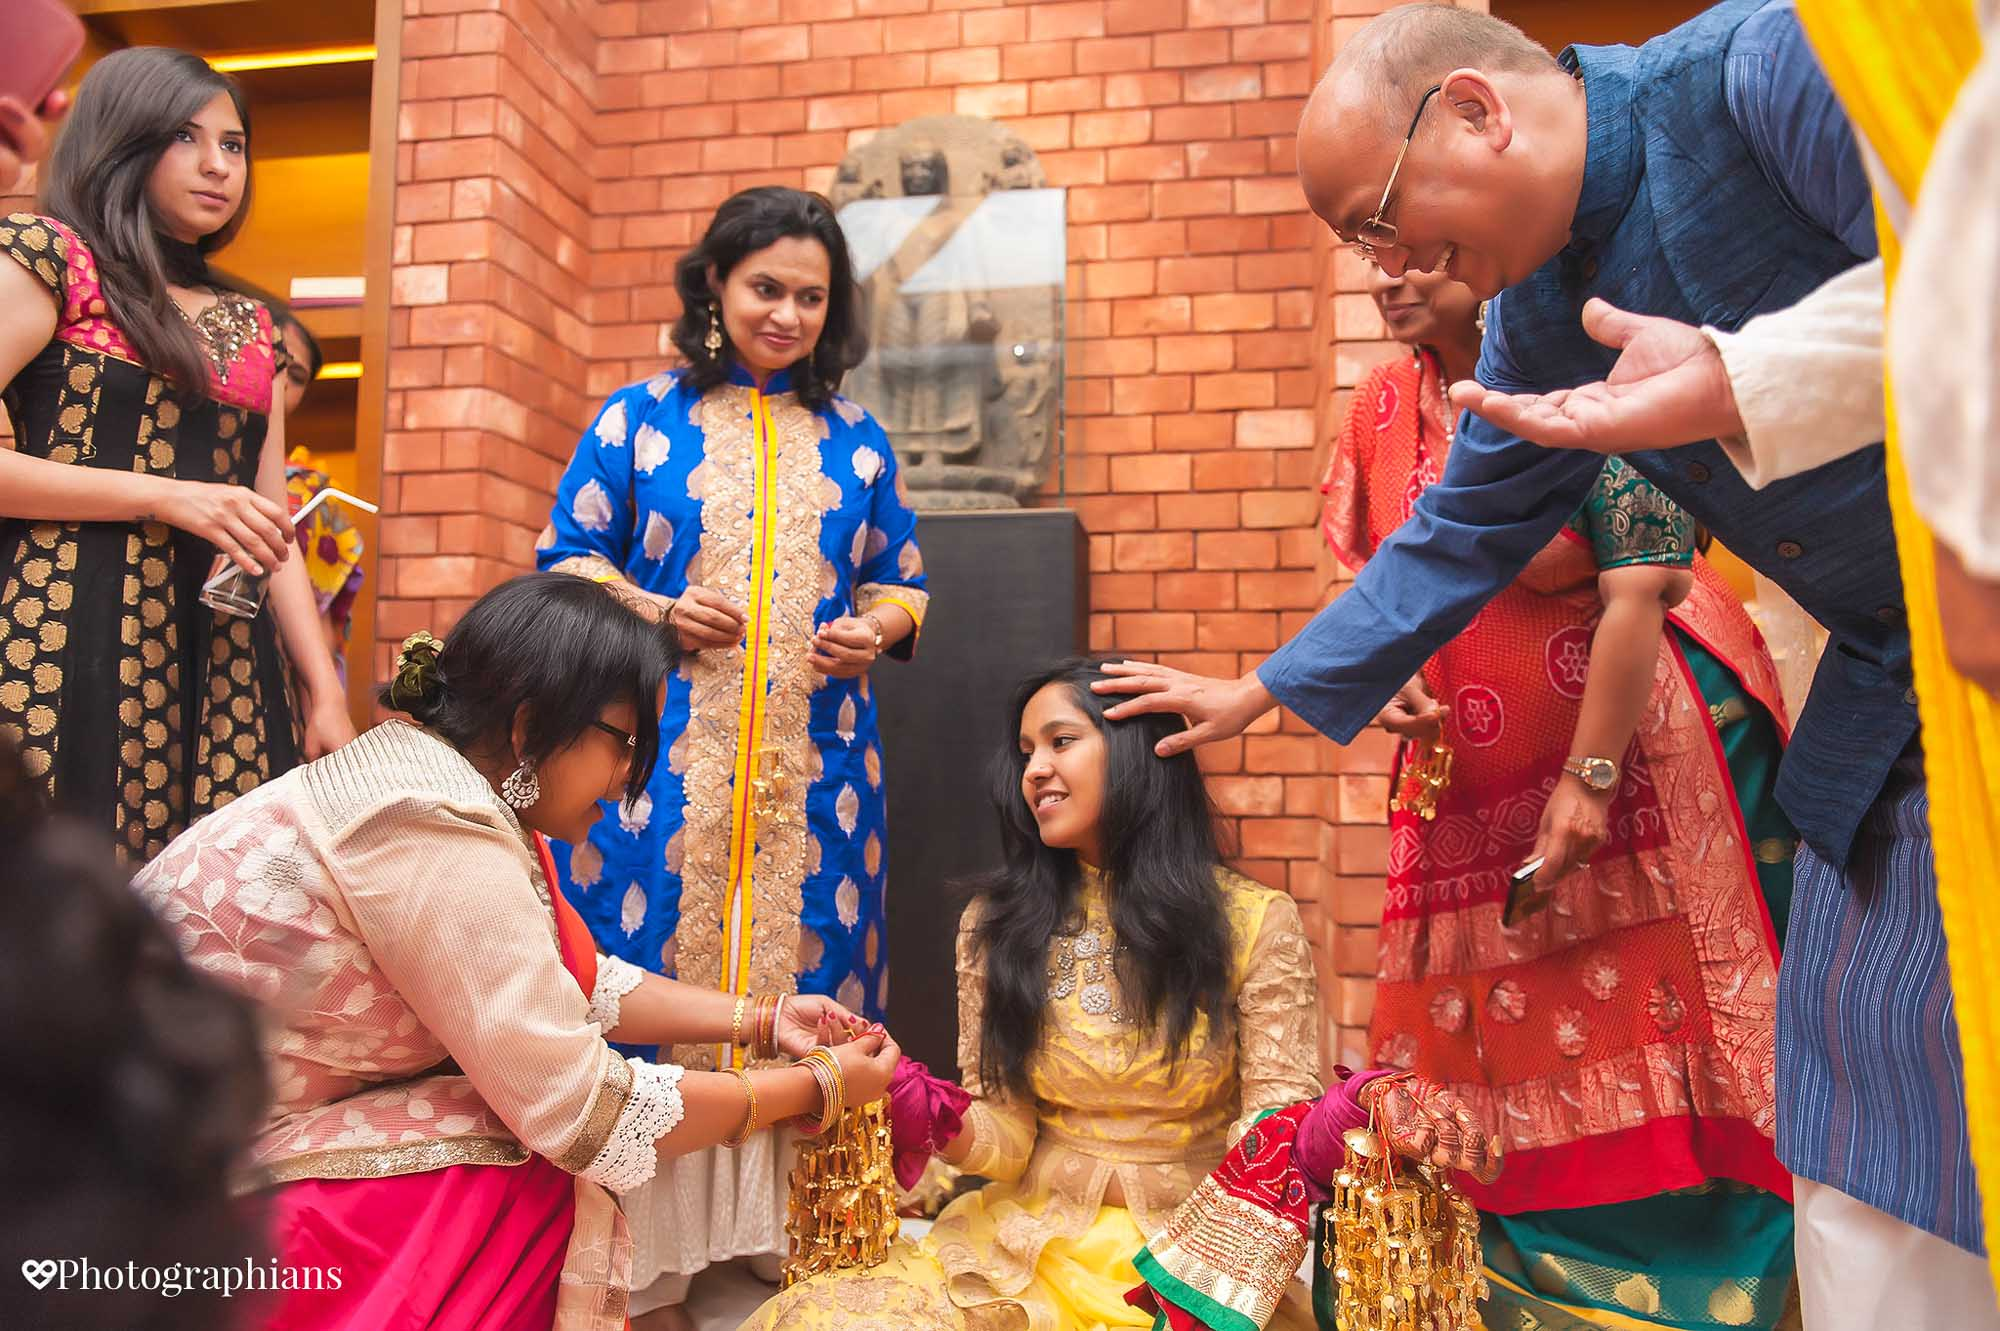 Punjabi_Marwari_Wedding_Kolkata_Photographians_-VIDHI-151